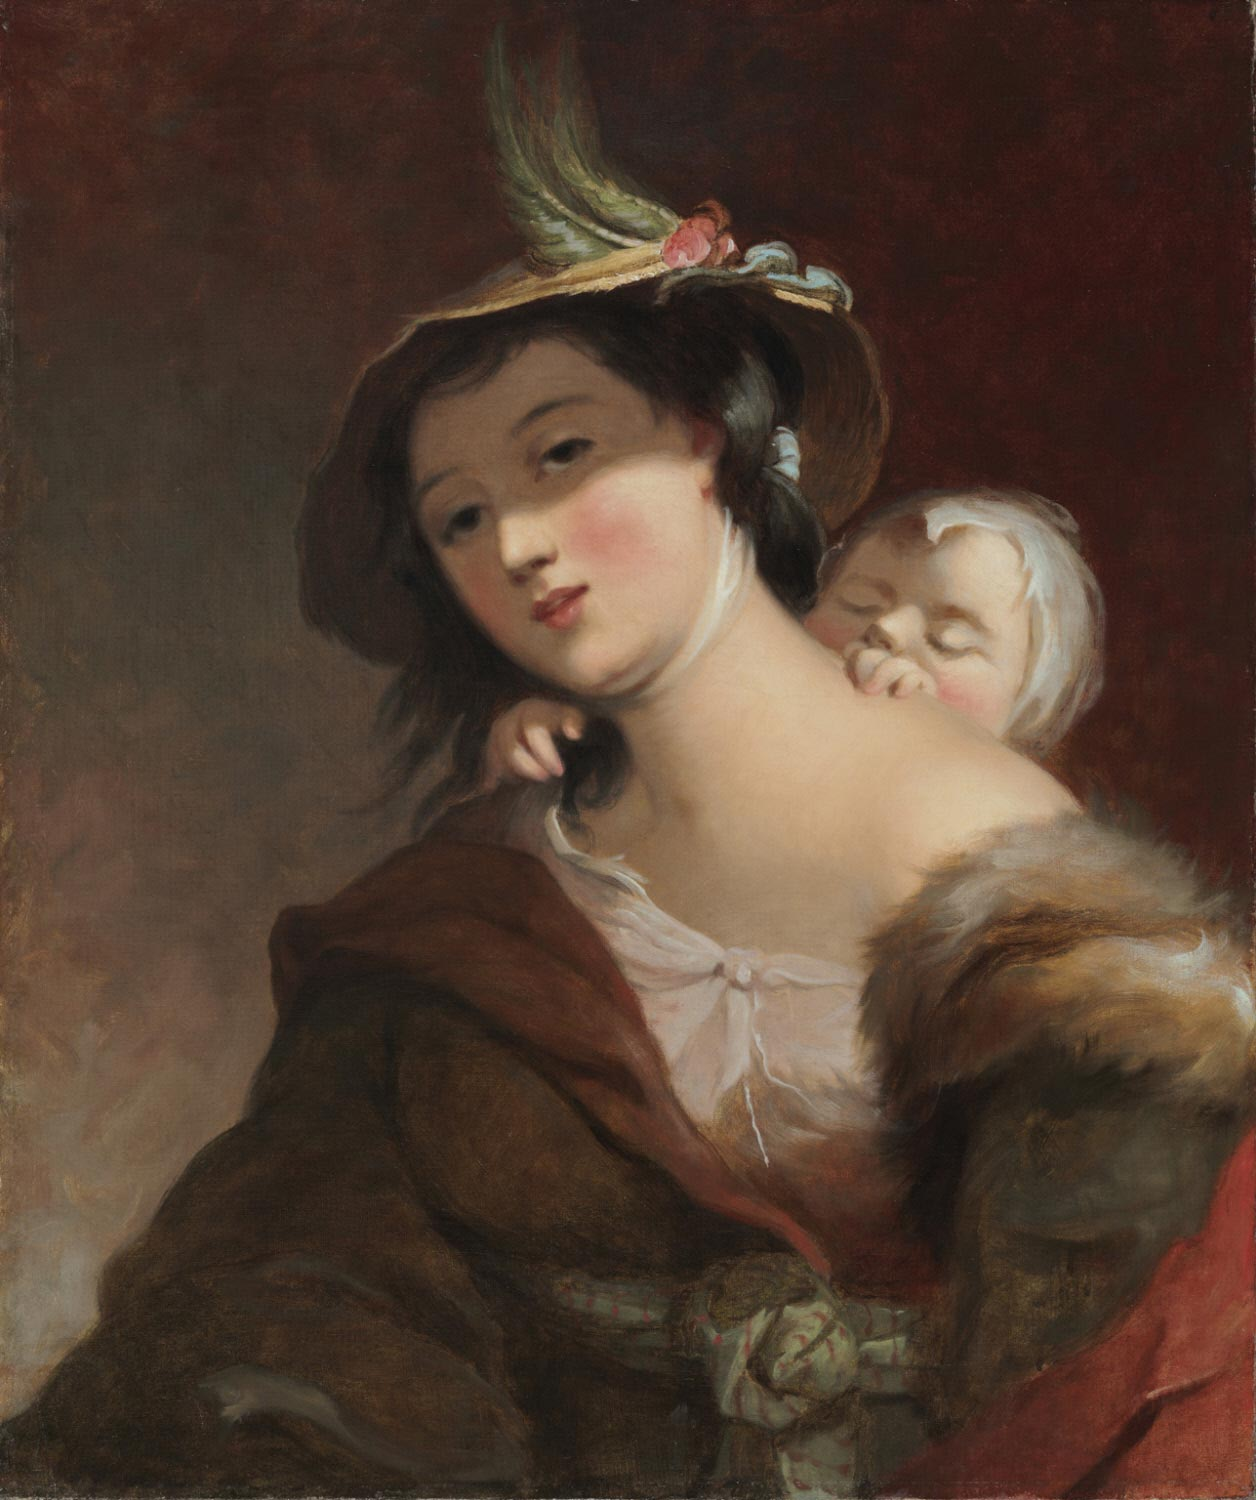 Gypsy Woman and Child, after Murillo